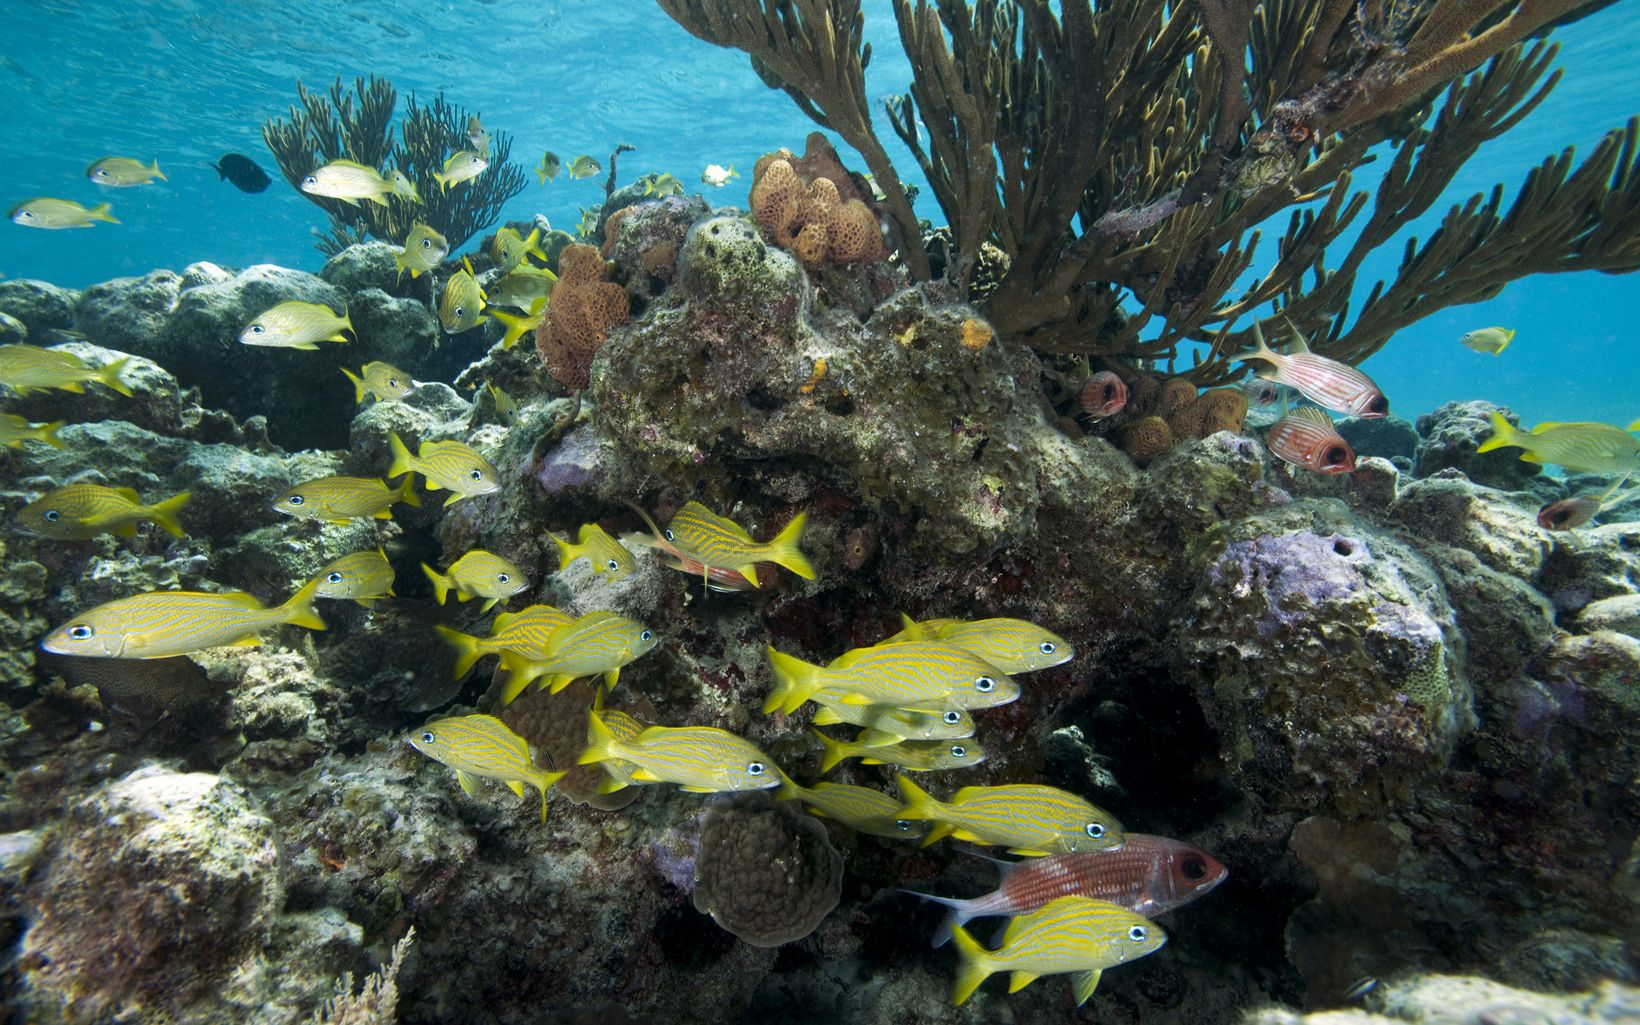 Fish swim through healthy reefs in the Exuma Cays.